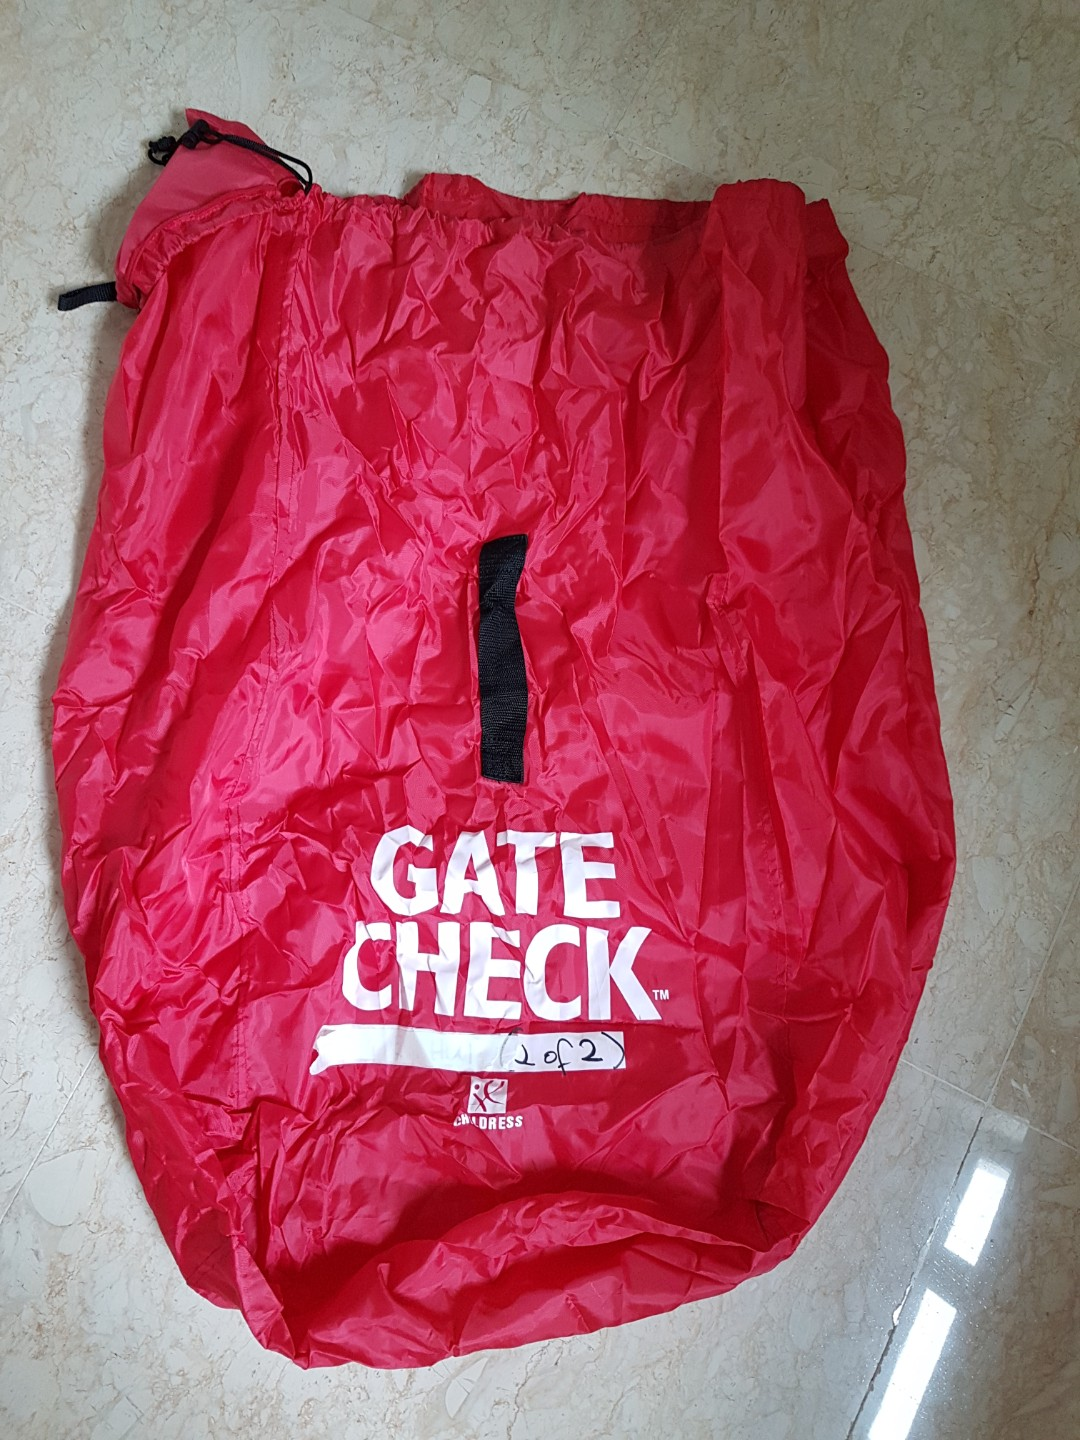 JL Childress Brand Gate Check Bag For Baby Car Seats Babies Kids Strollers Bags Carriers On Carousell